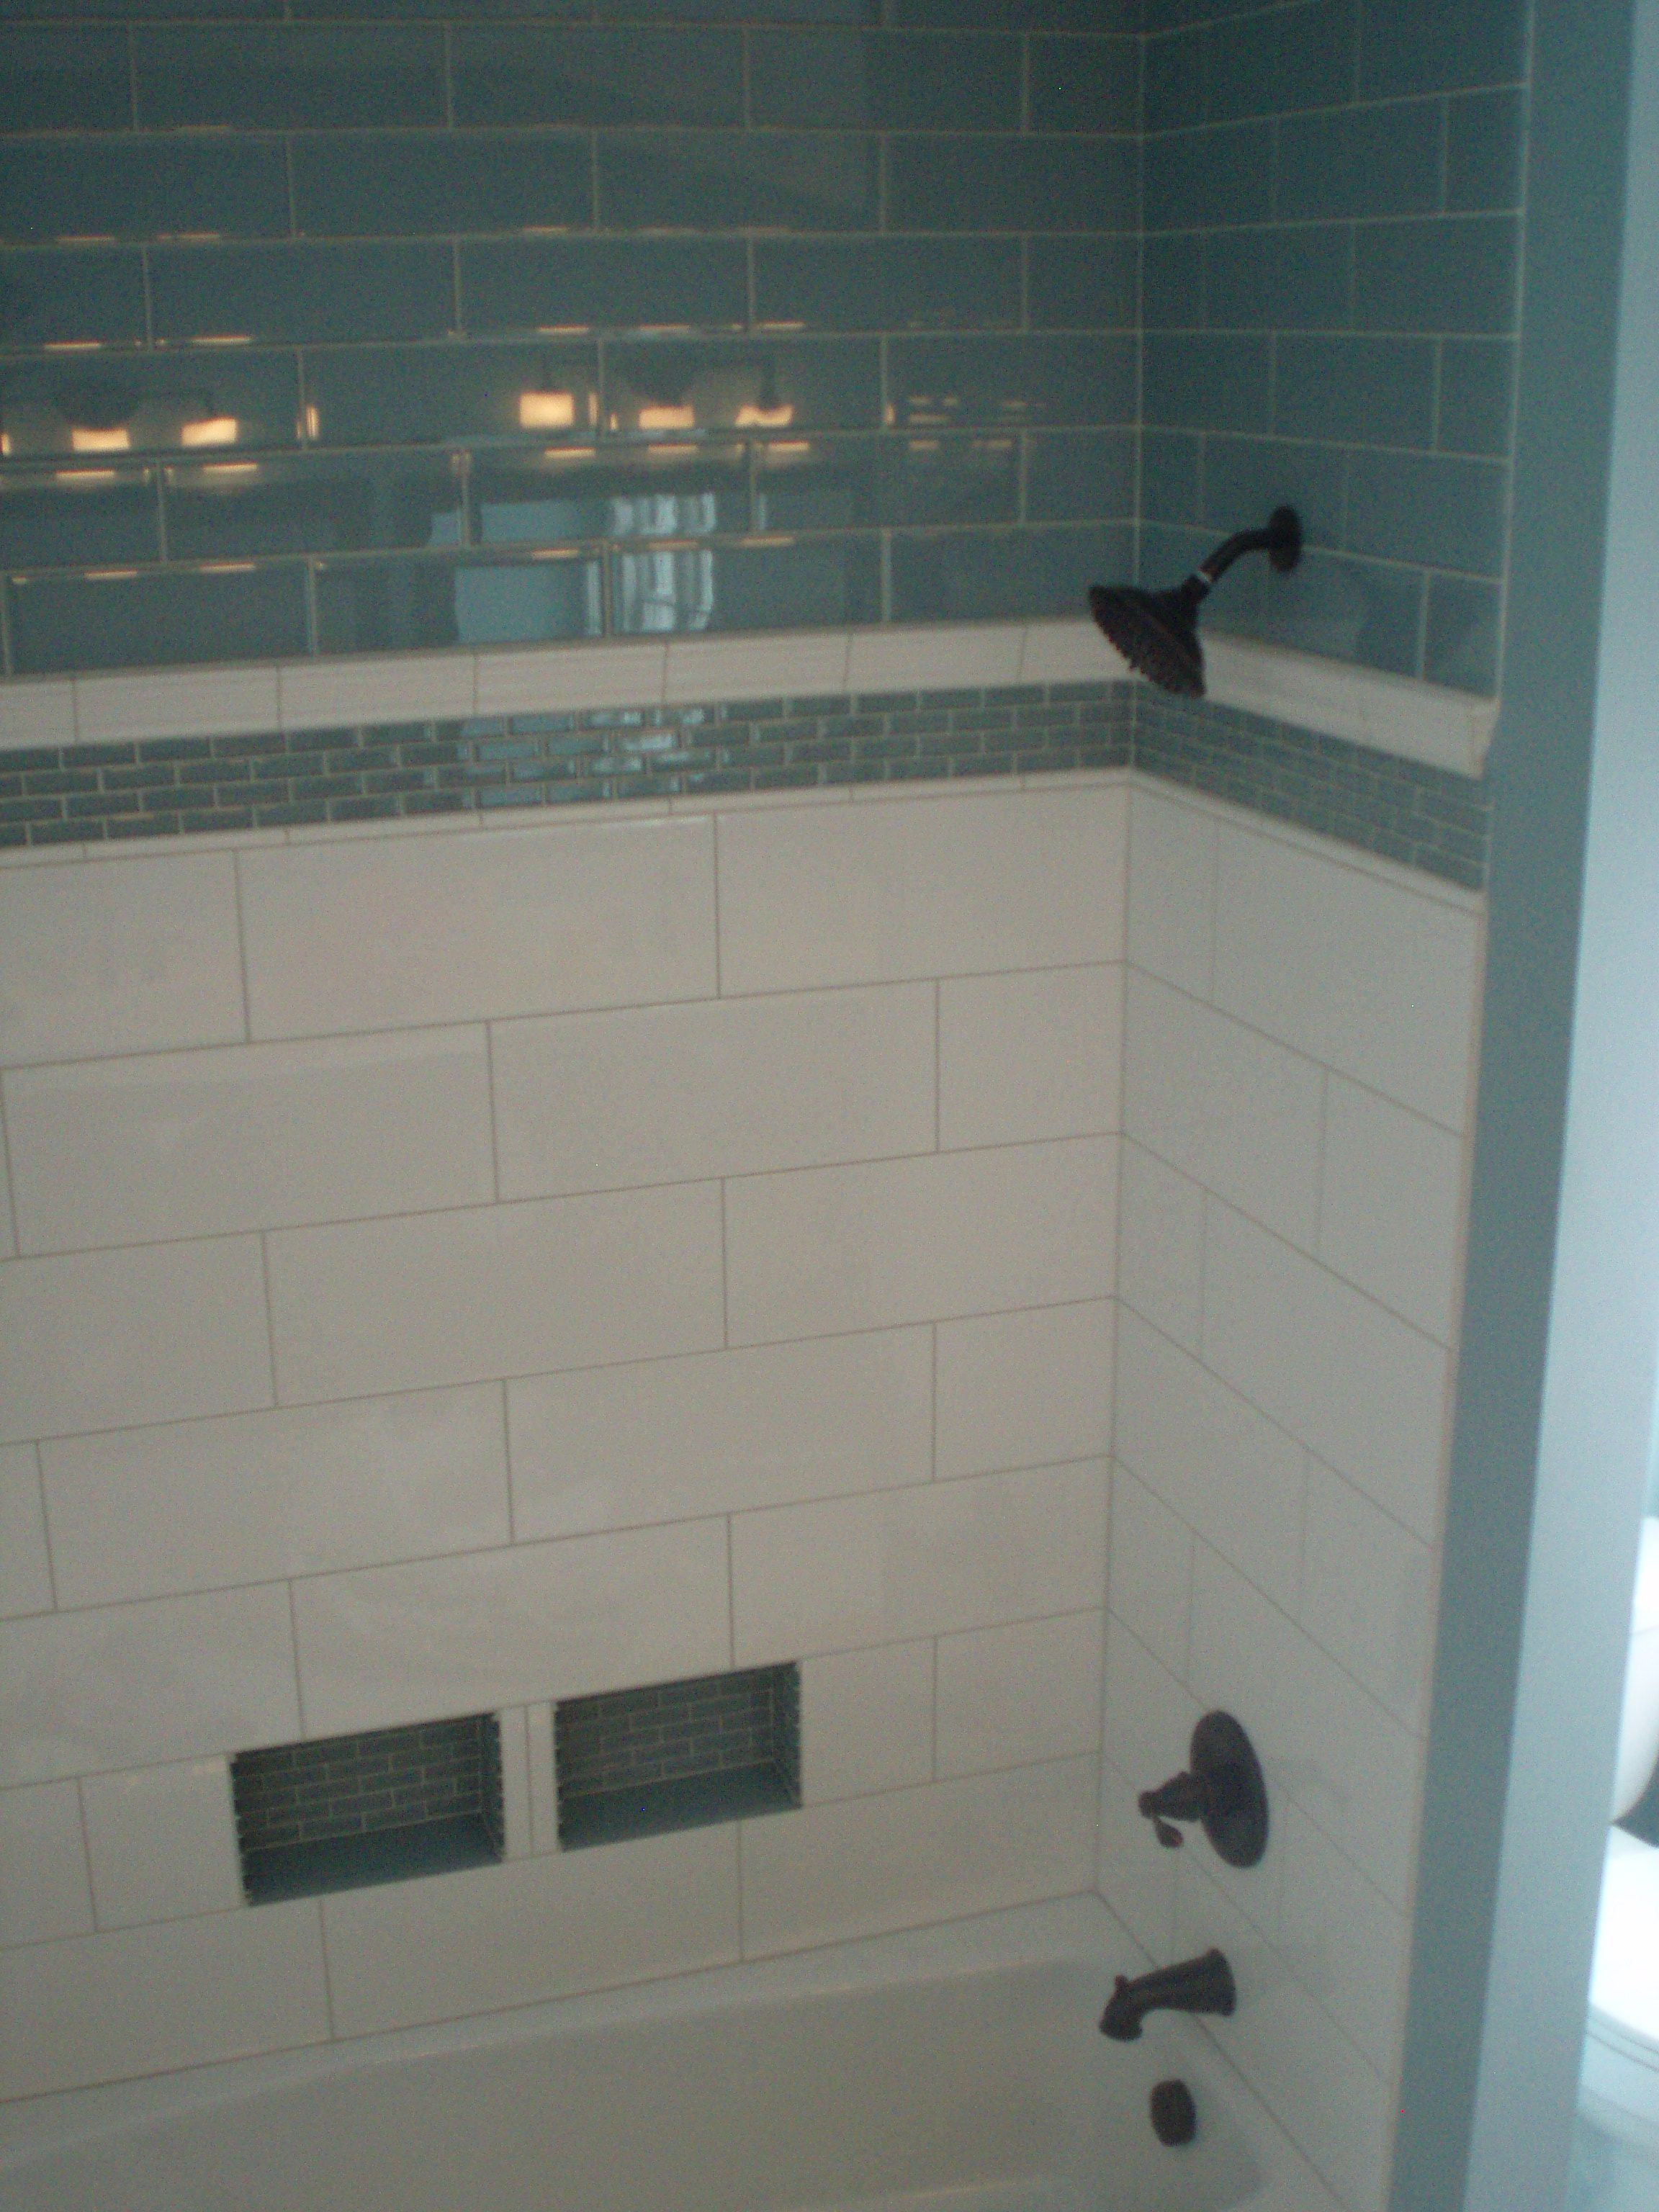 Porcelain and glass subway tile are classic The oversized tiles